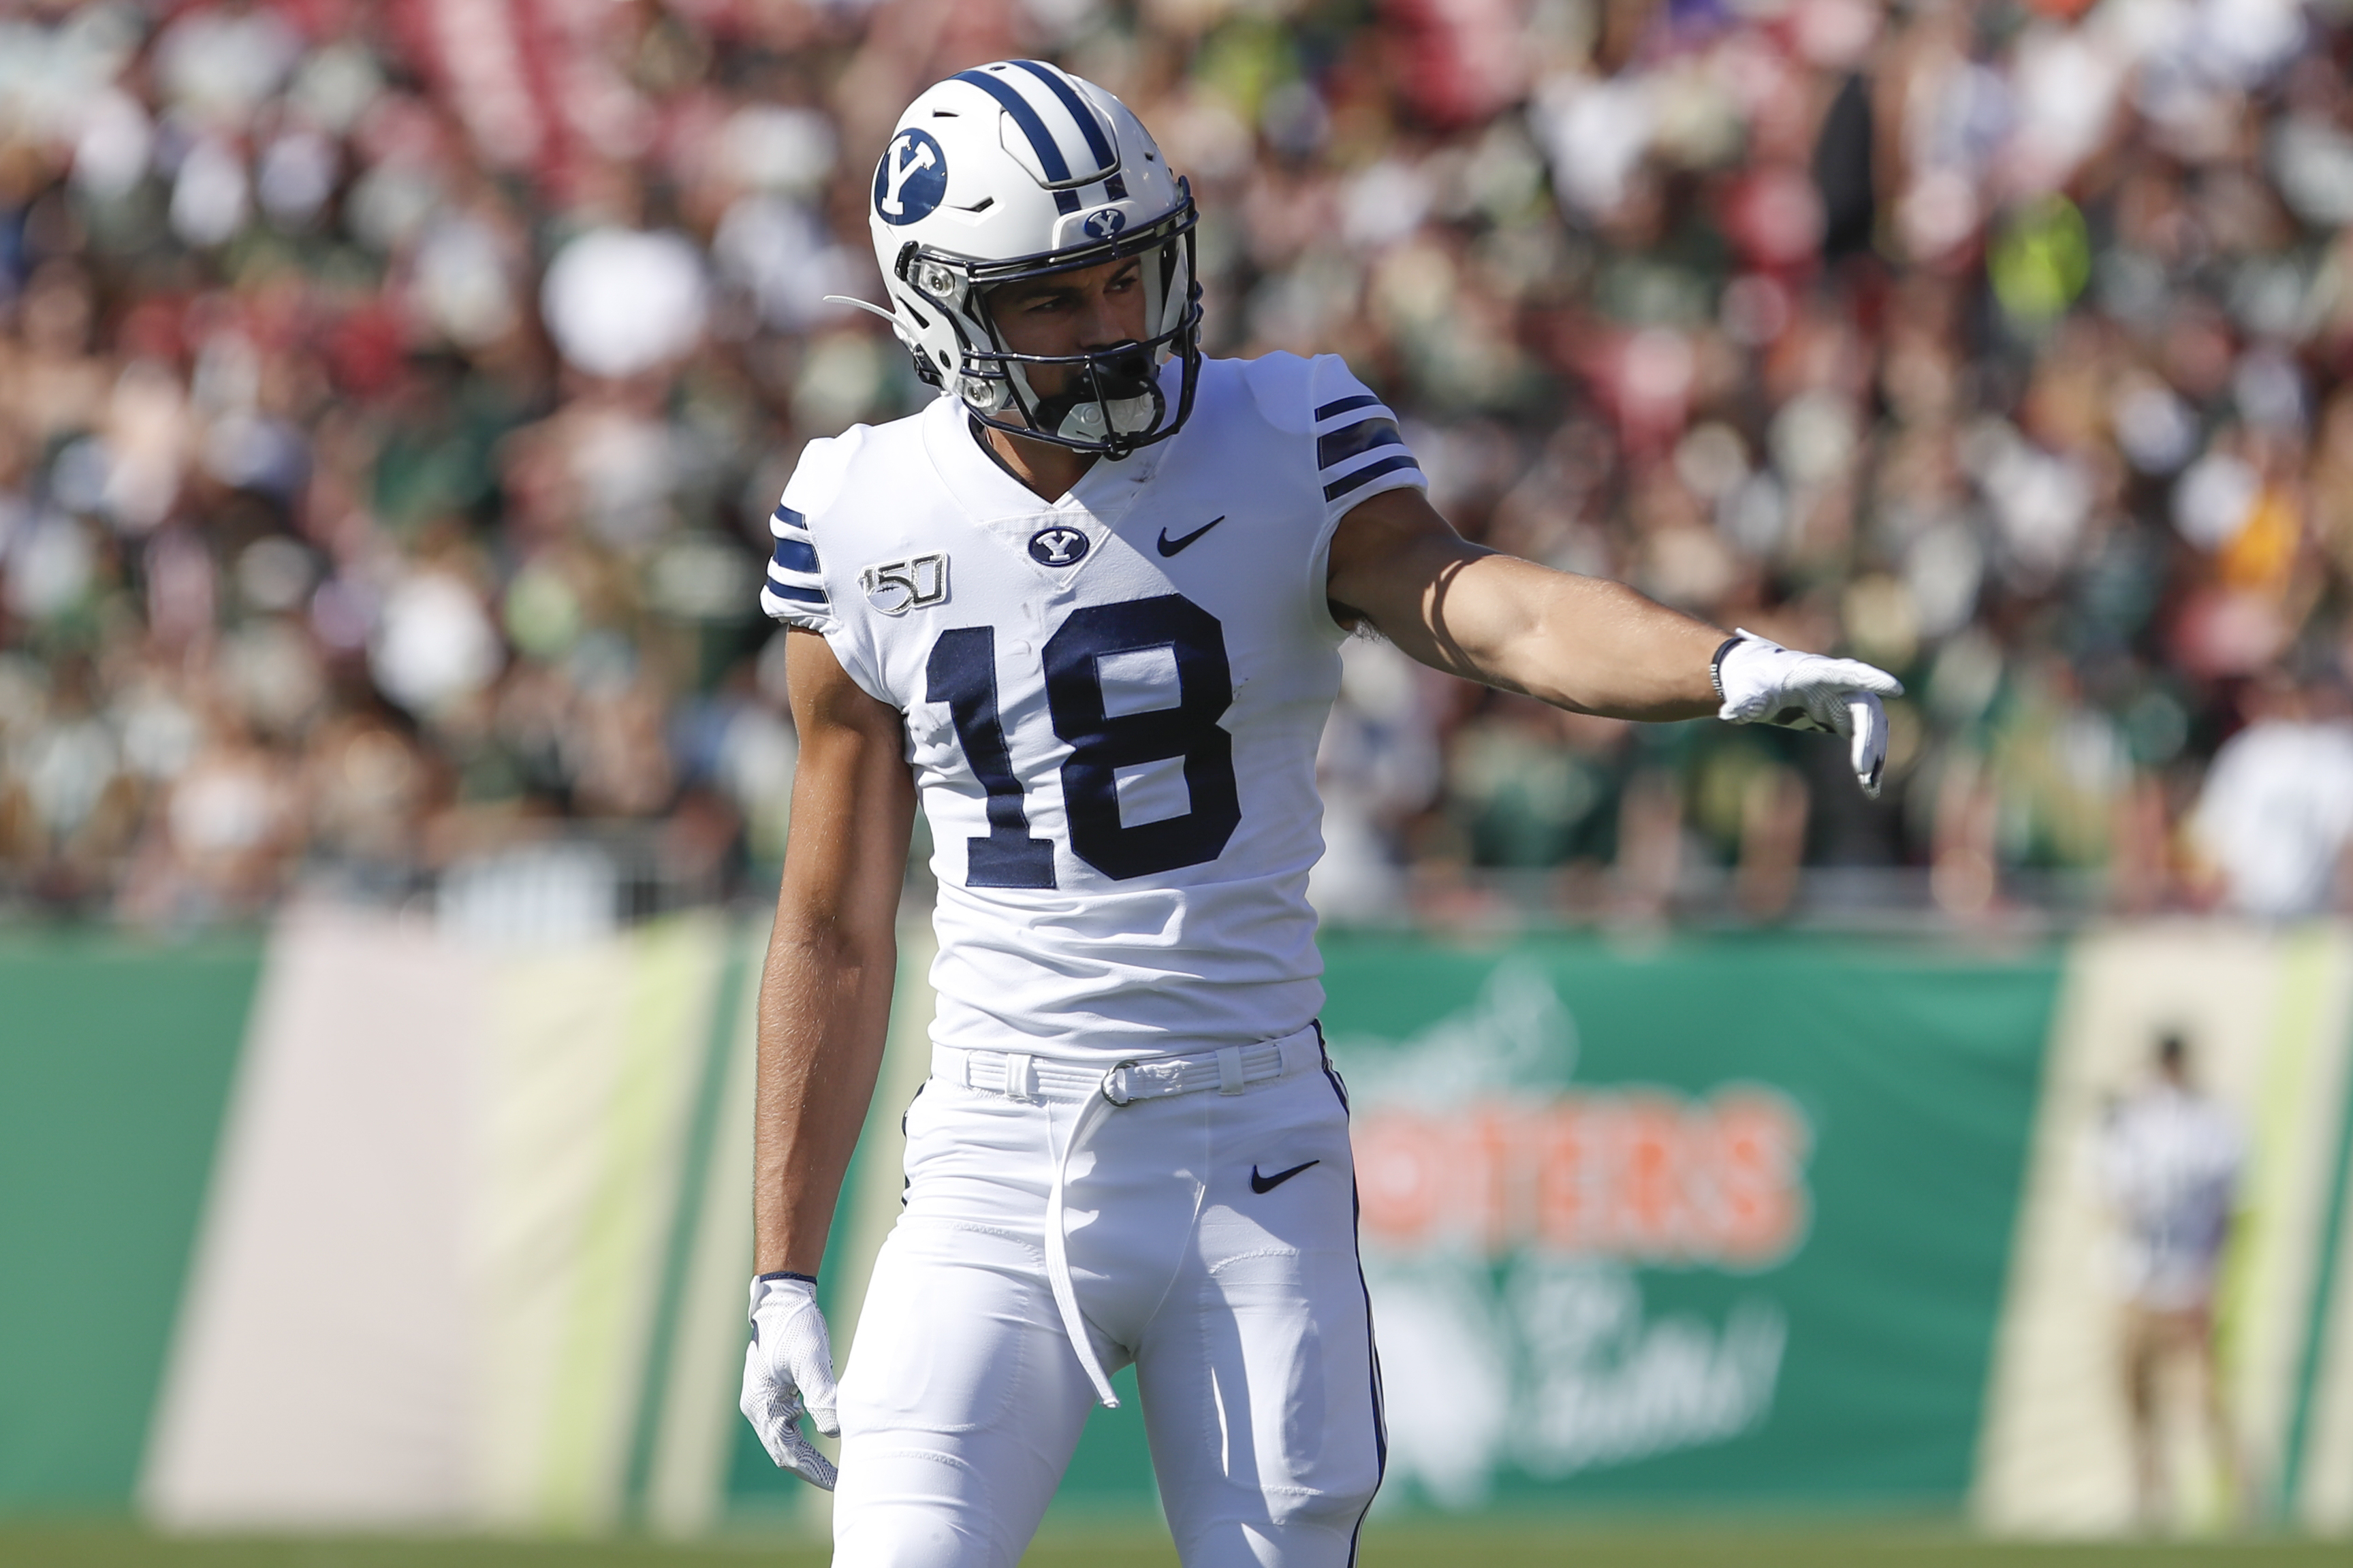 BYU receiver Gunner Romney is having a breakout 2020 season. Is he related to U.S. Senator Mitt Romney?